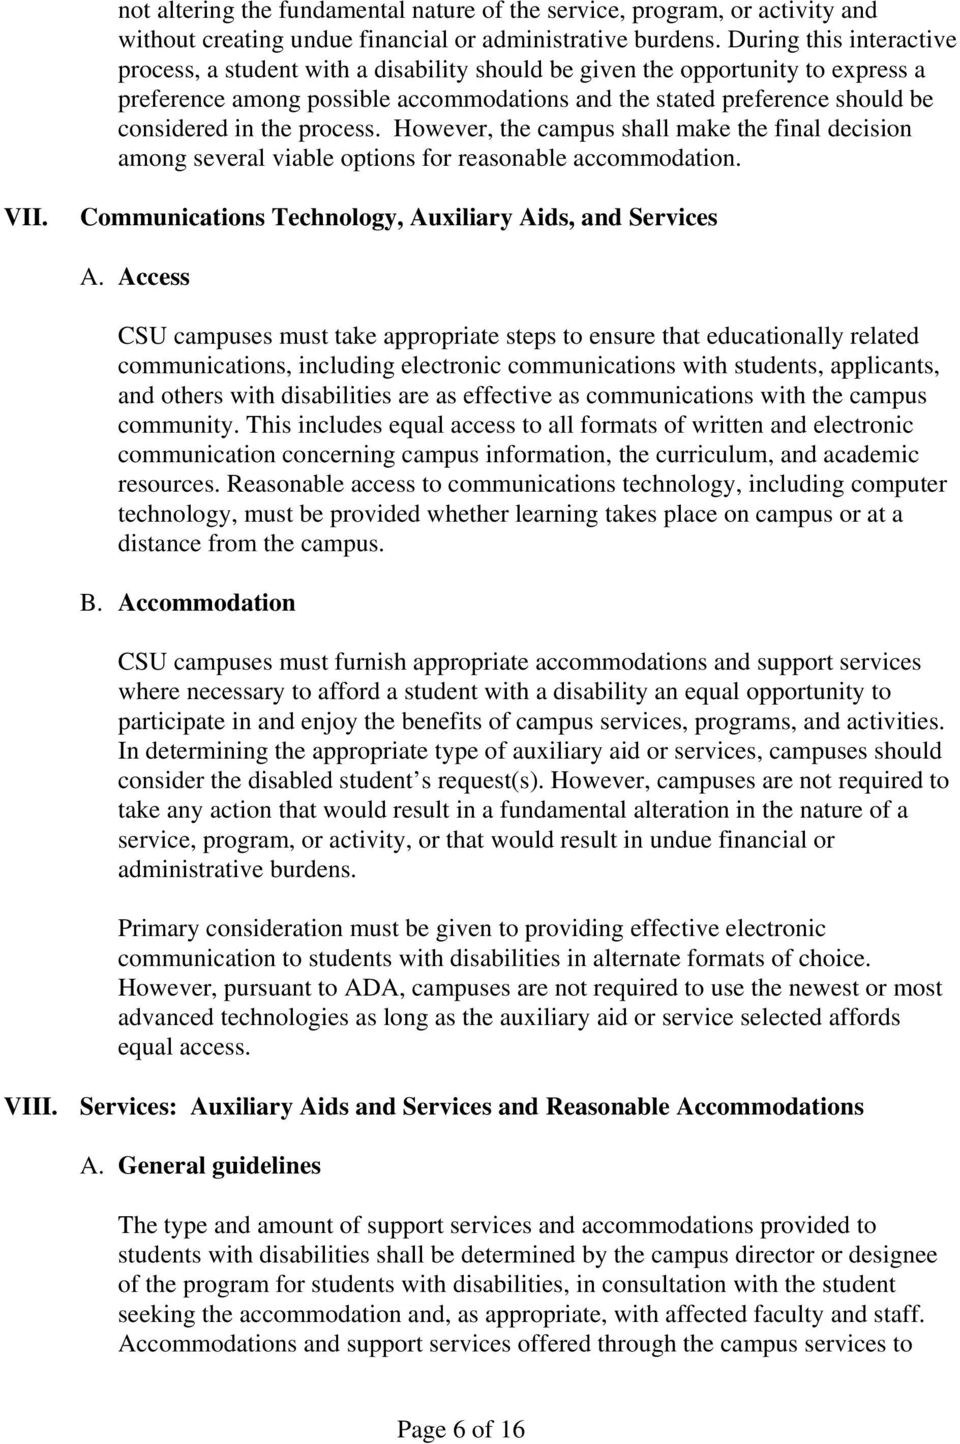 the process. However, the campus shall make the final decision among several viable options for reasonable accommodation. VII. Communications Technology, Auxiliary Aids, and Services A.